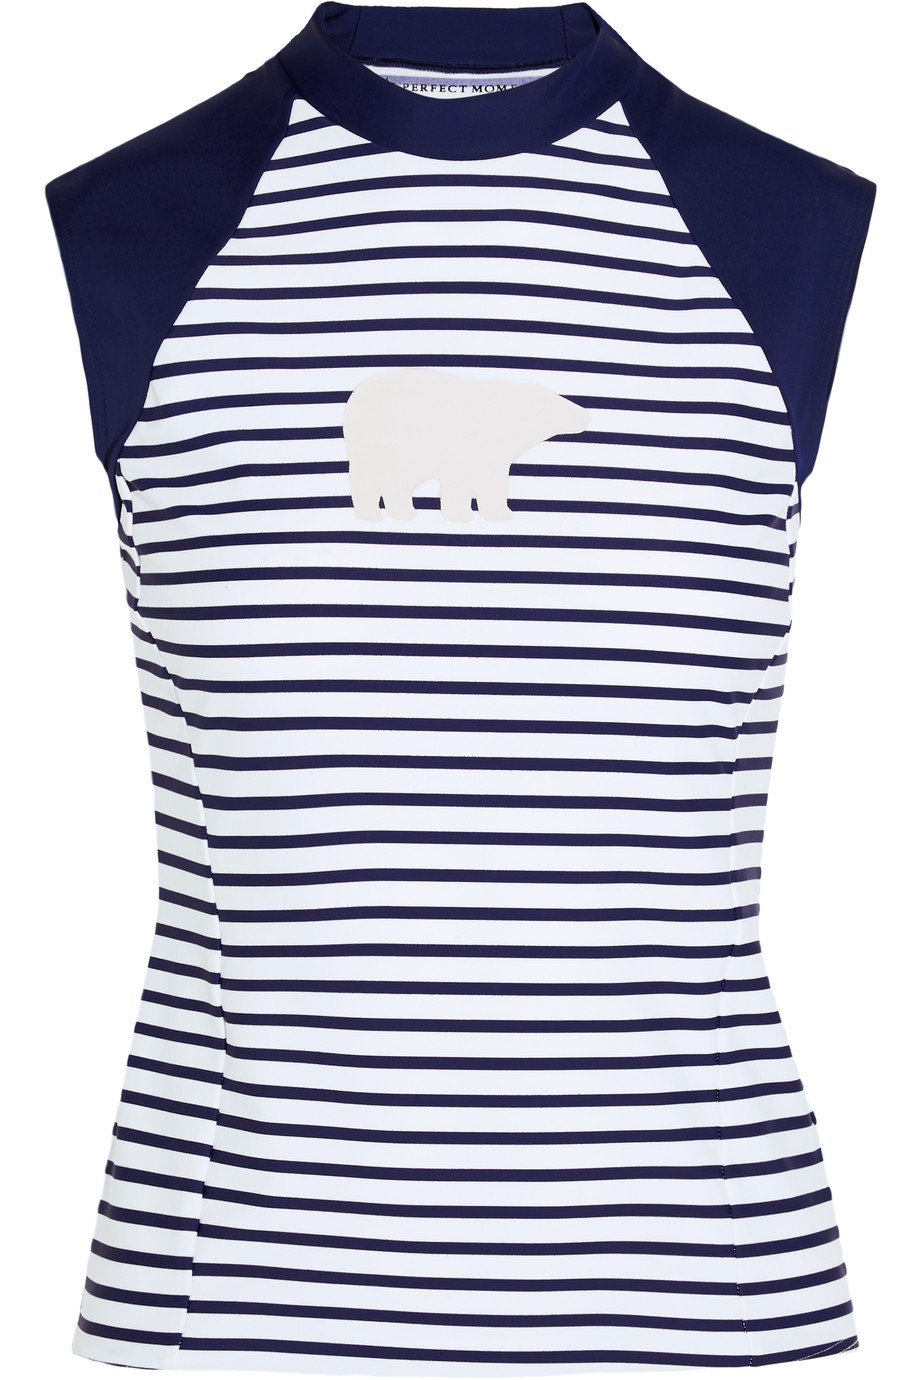 Perfect Moment Striped Rash Guard, Navy